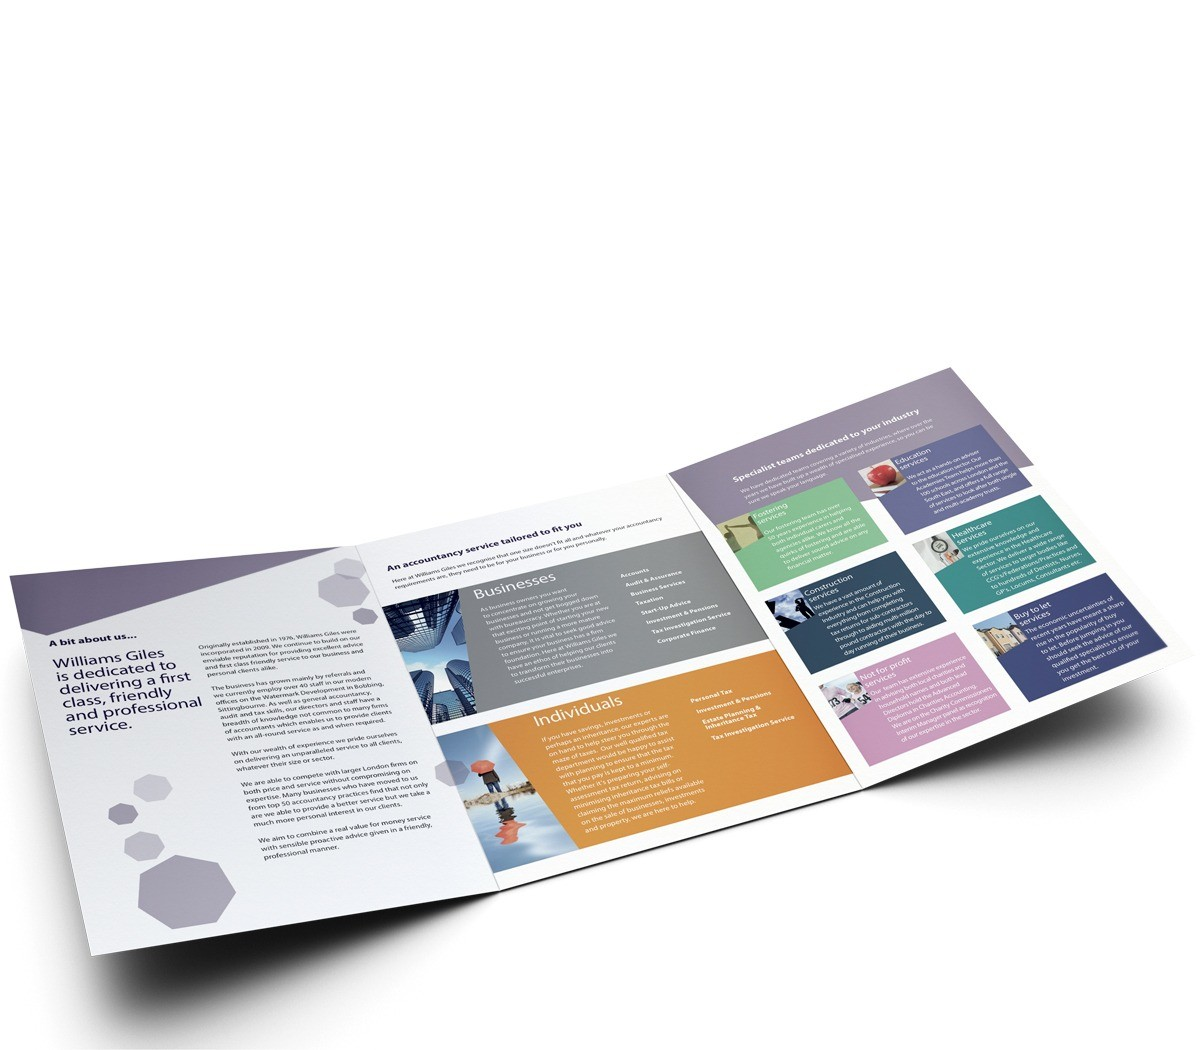 An image showing the open 6 page brochure designed for Williams Giles